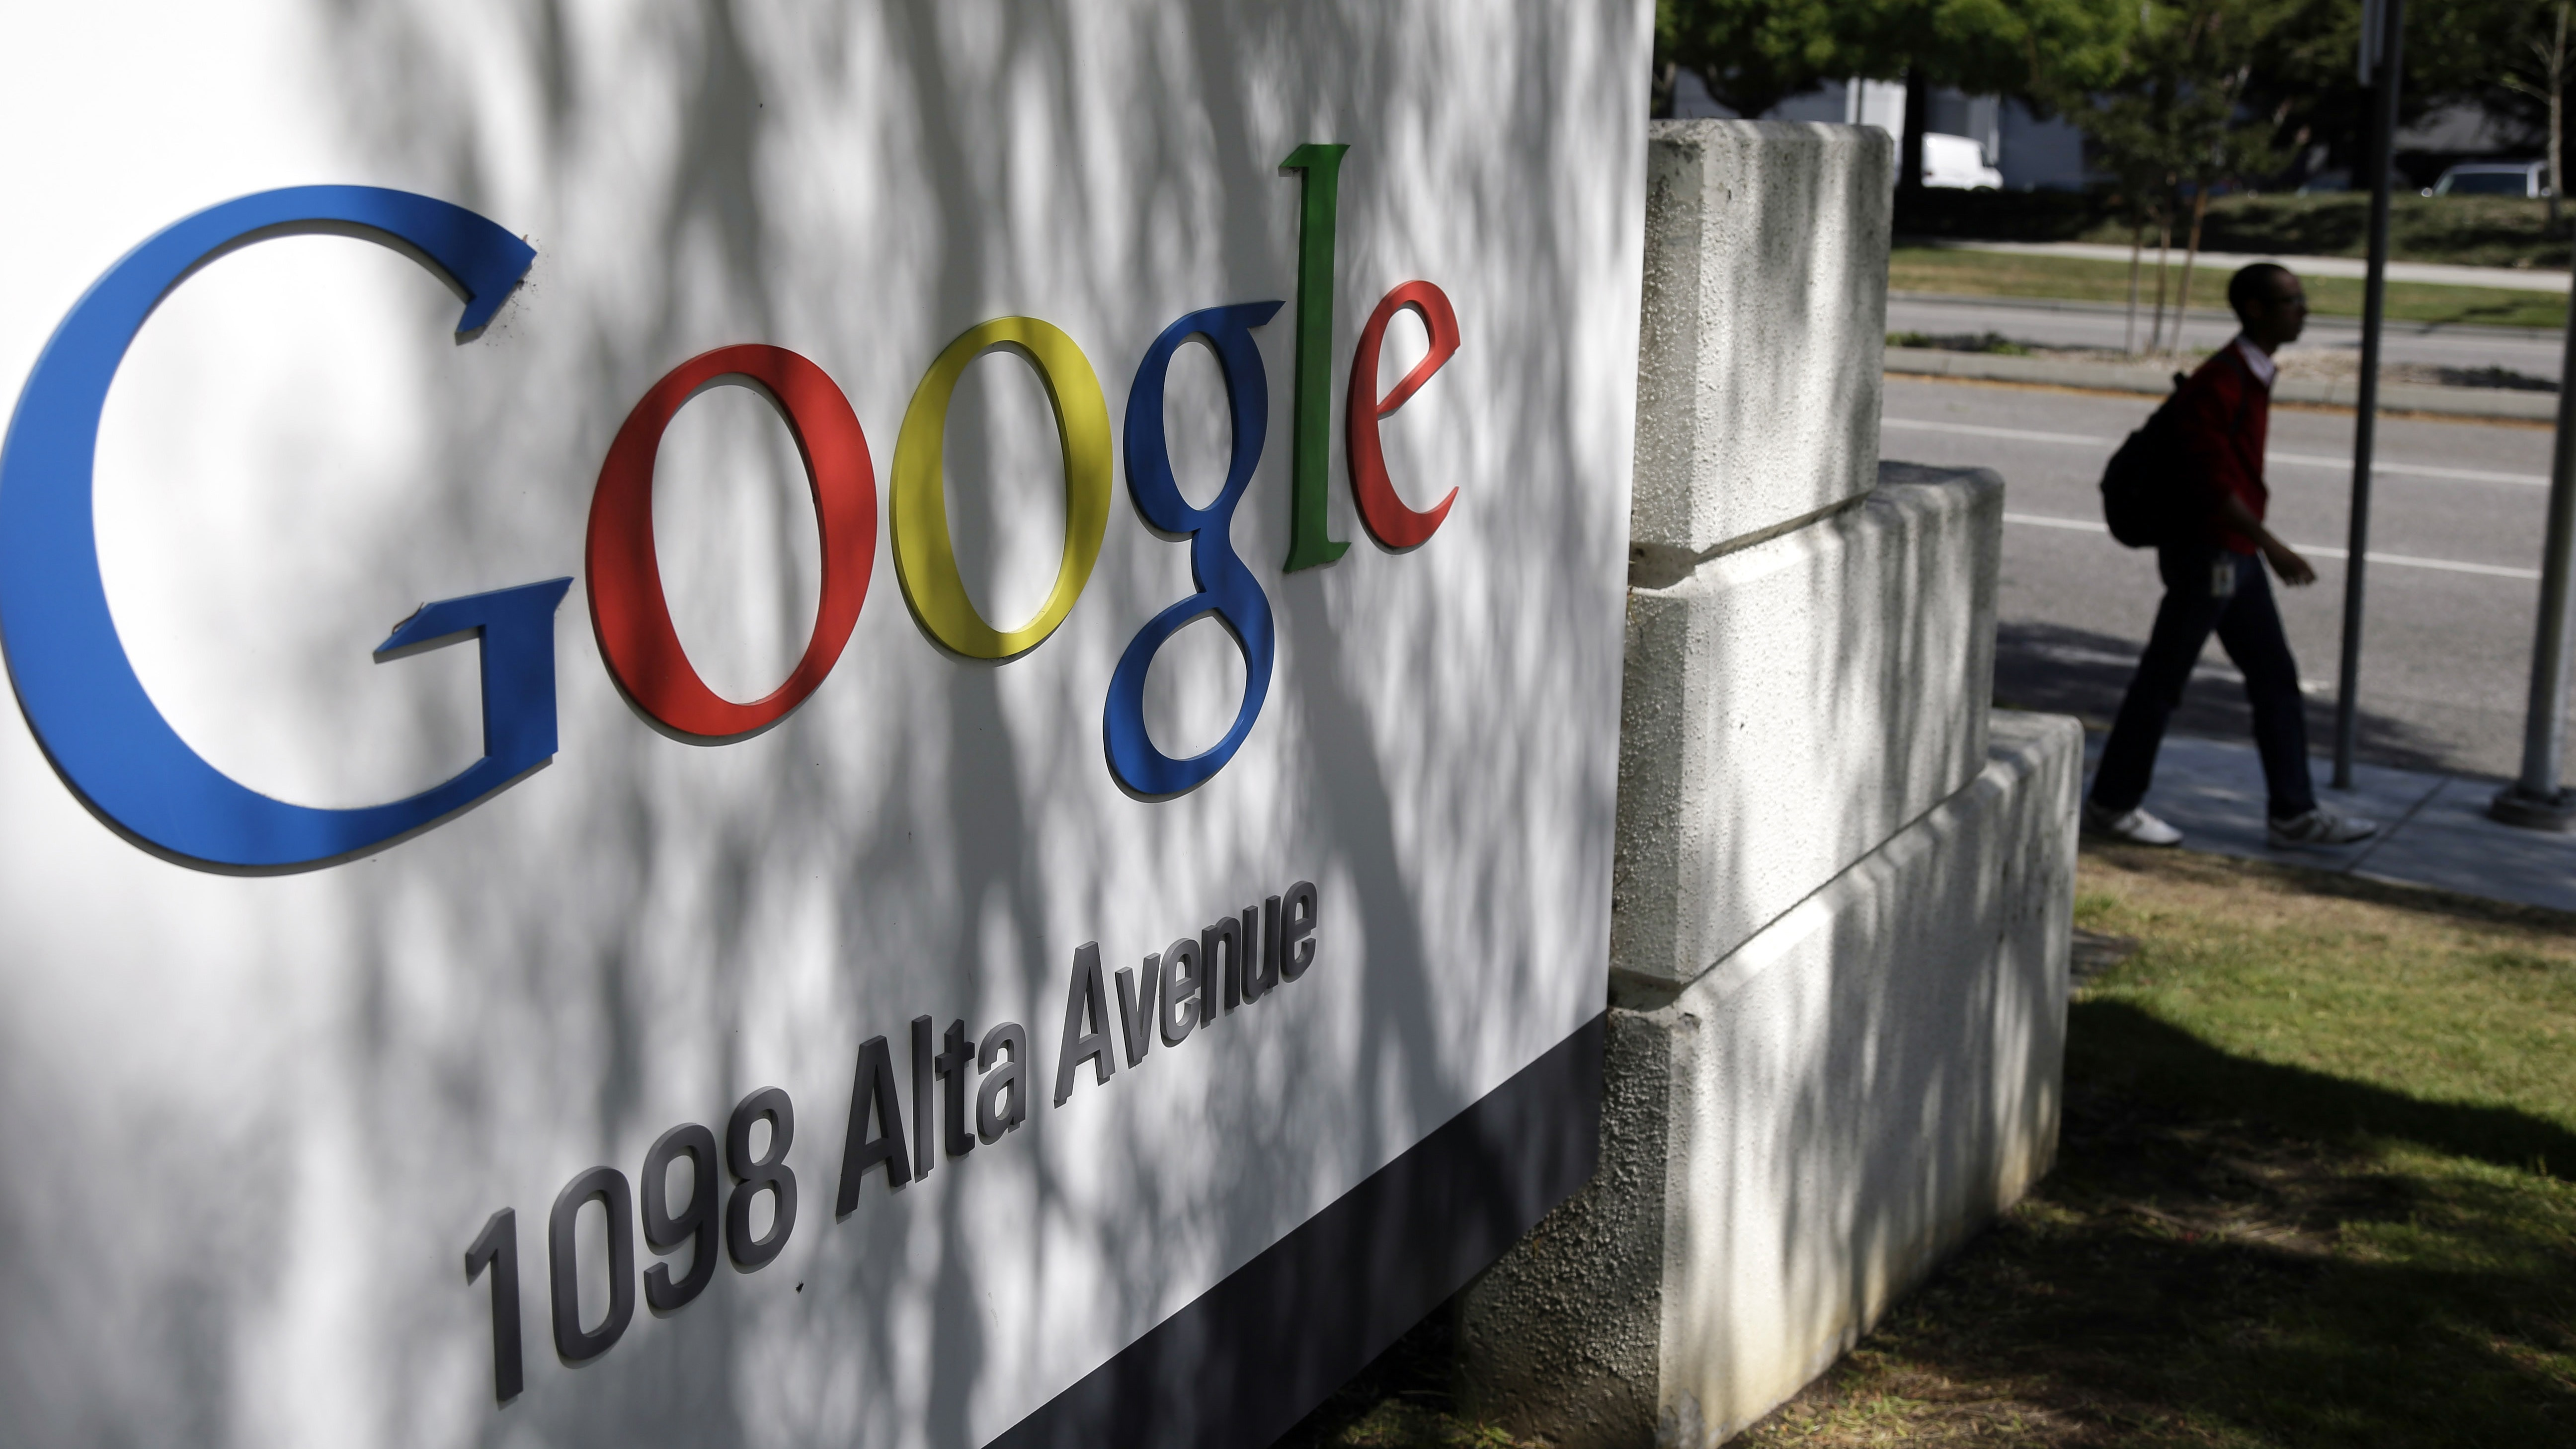 In this June 5, 2014 file photo, a man walks past a Google sign at the company's headquarters in Mountain View, Calif., U.S.A. The politically-fraught issue of forcing big, multinational companies to pay more tax will be high on the agenda at G-20 summit on Nov. 15 and 16 in Brisbane, Australia. There has been an ongoing effort by governments to crack down on tax avoidance, with companies such as Google and Amazon facing criticism for moving profits earned in one country to other countries with lower tax rates. (AP Photo/Marcio Jose Sanchez, File)